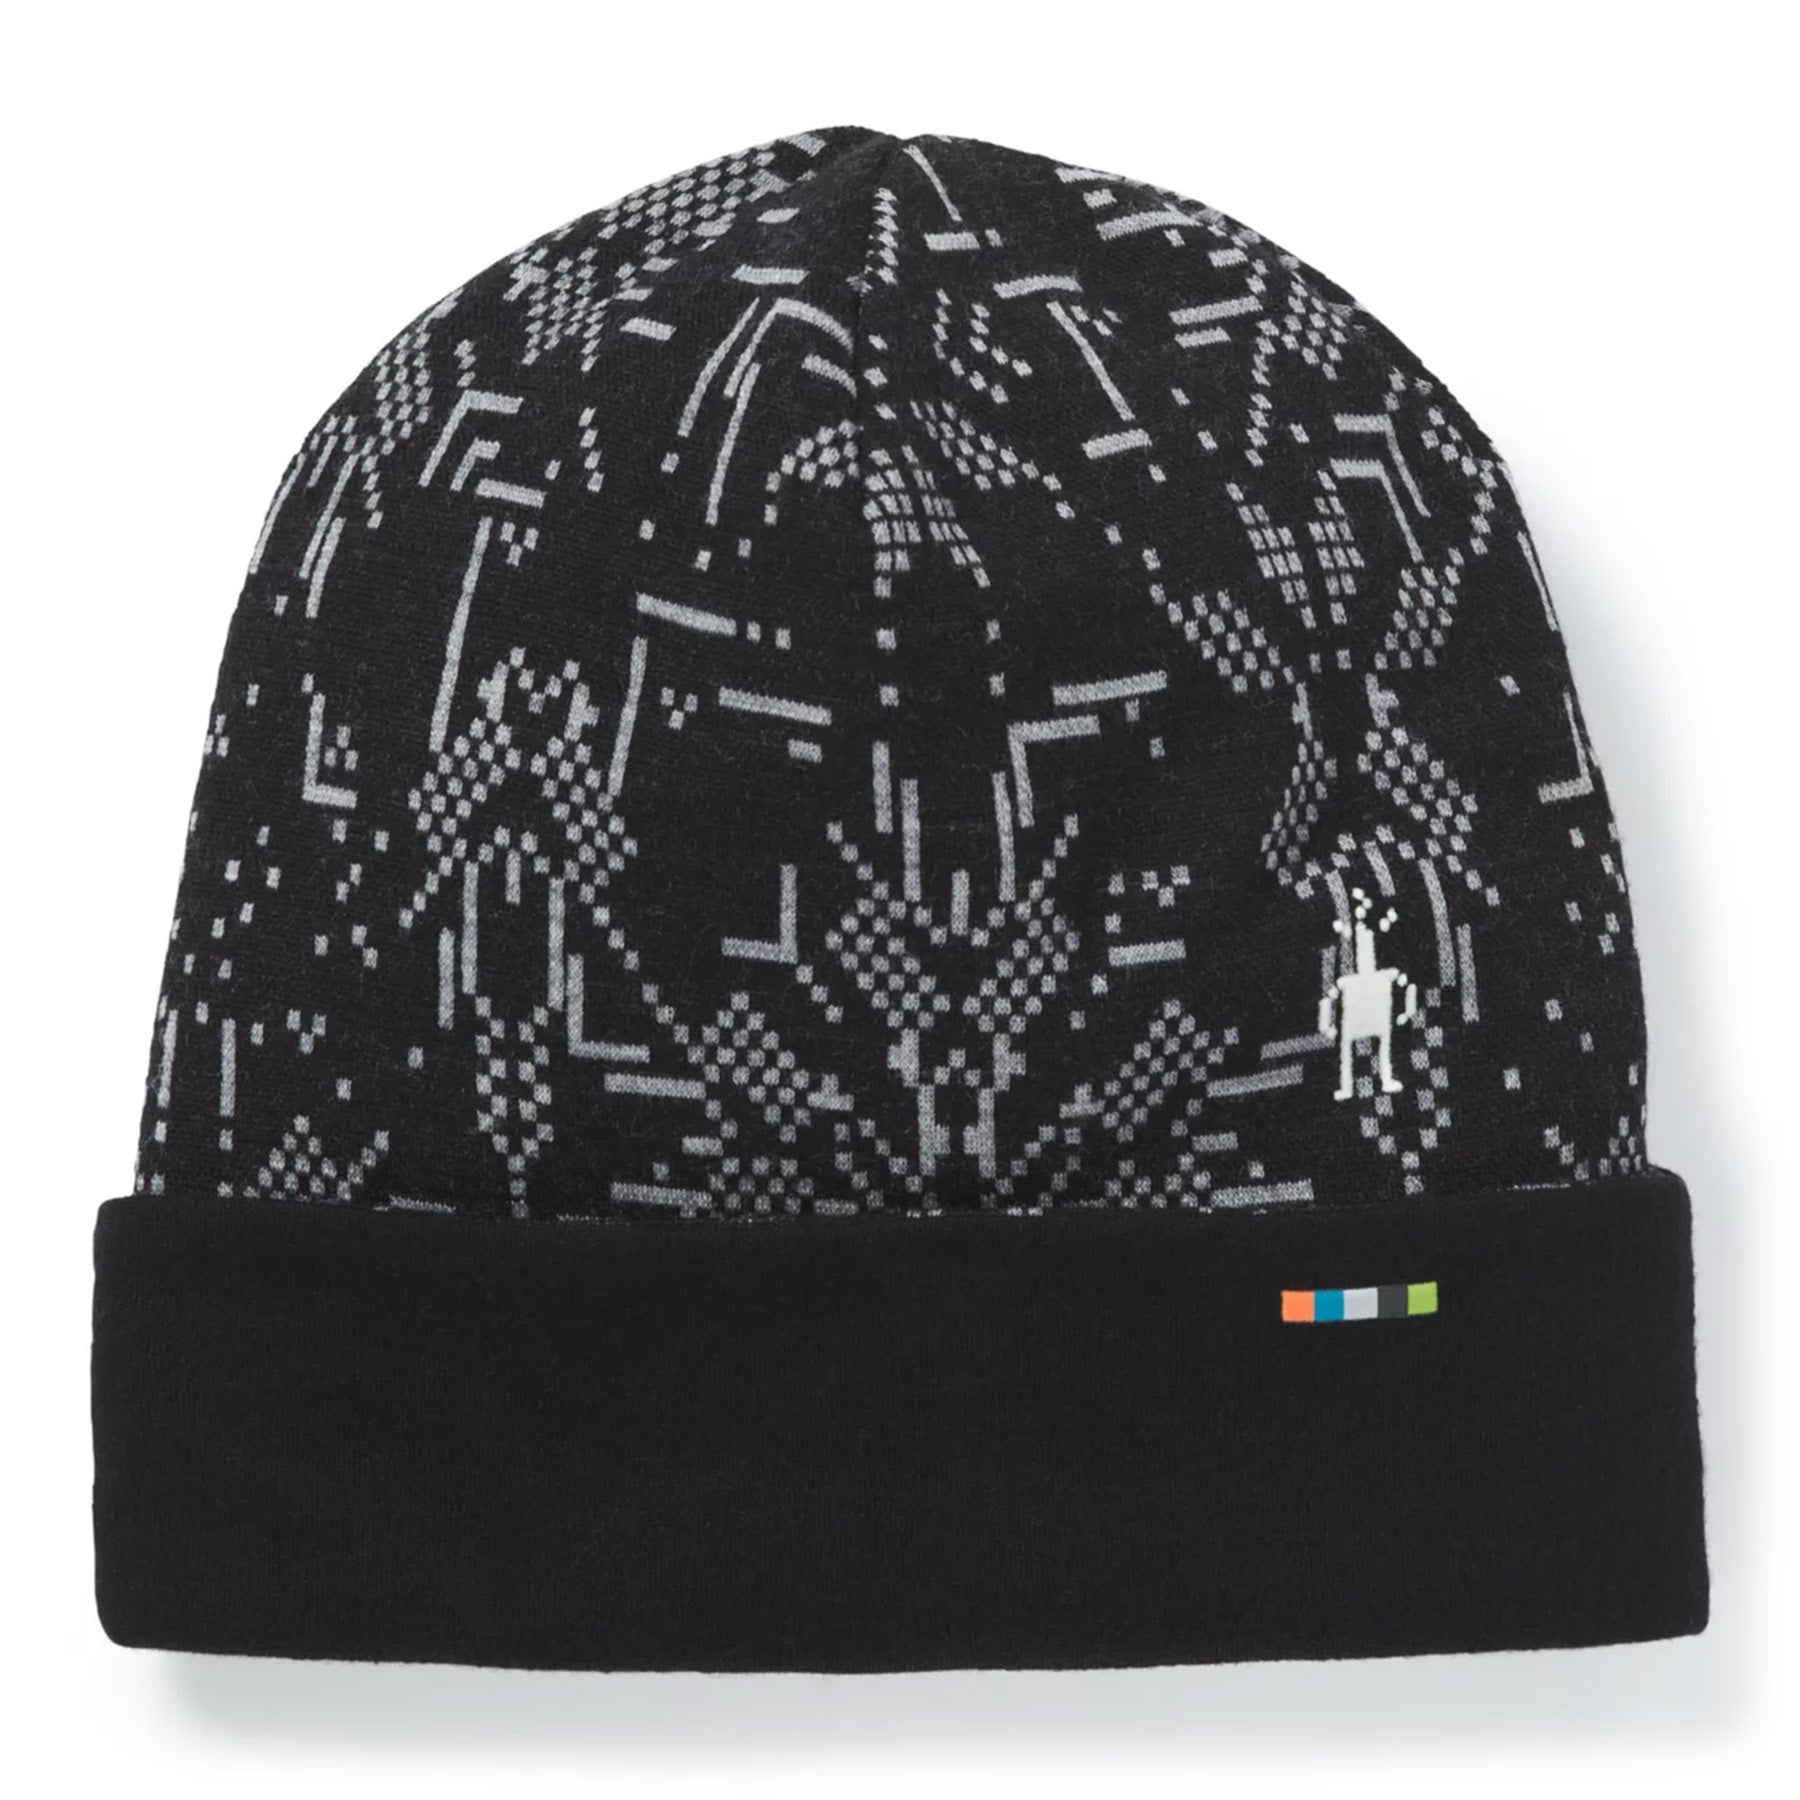 the black digital snowflake pattern mainly black with white lines that are meant to be snowflakes